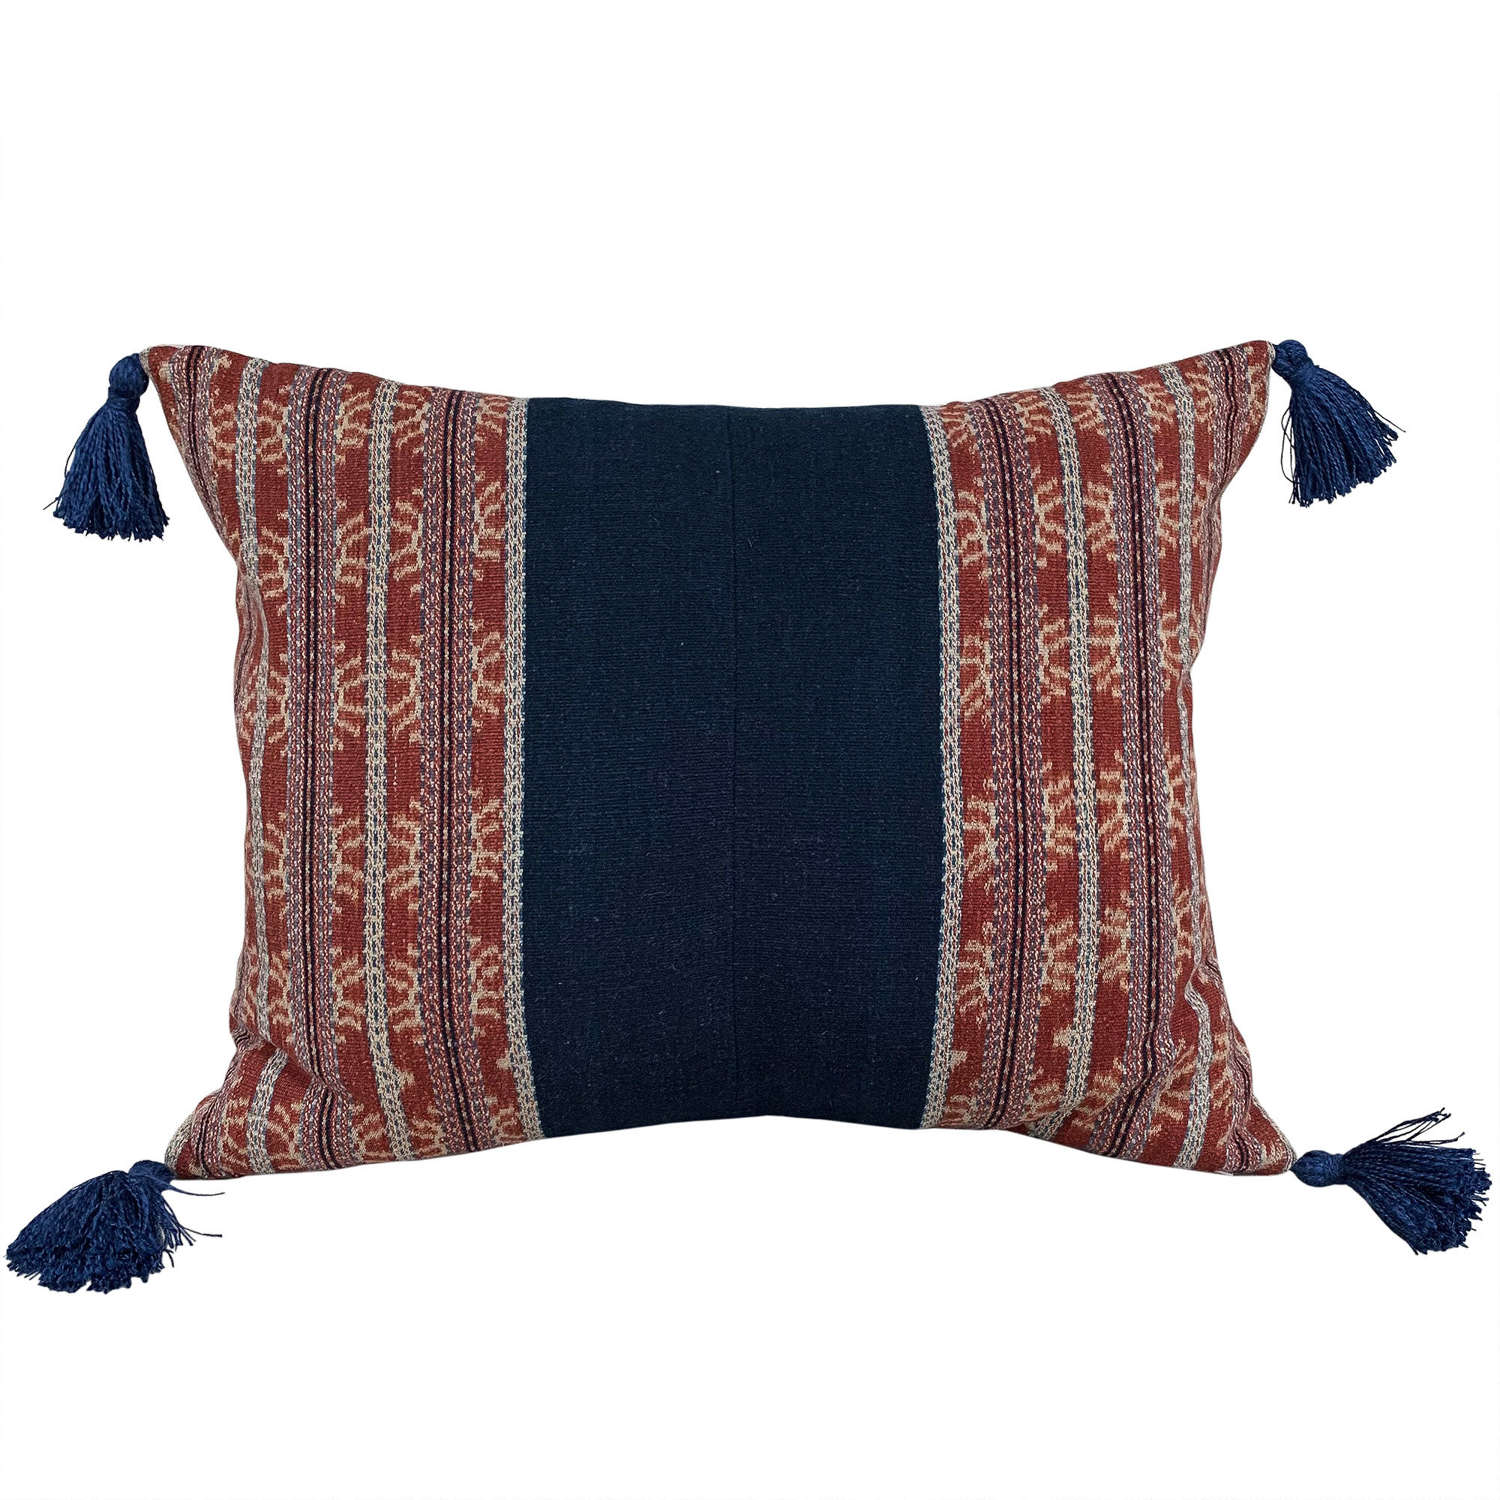 Savu cushion with tassels